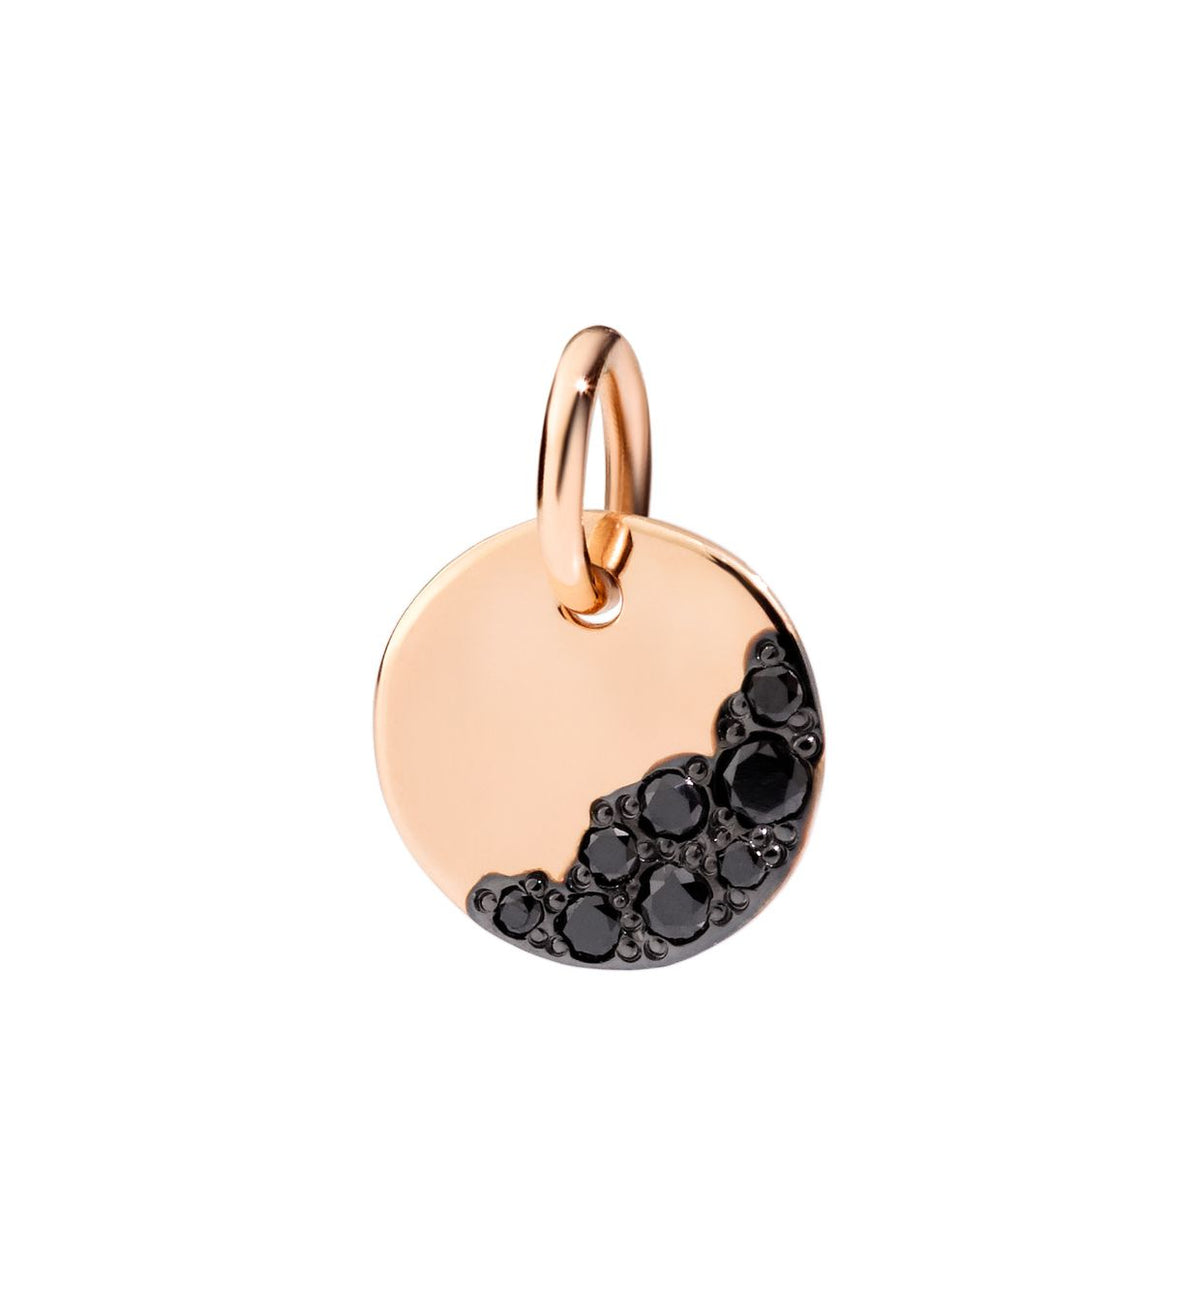 DoDo Precious Tag Charm Night in 9k Rose Gold with Black Diamonds